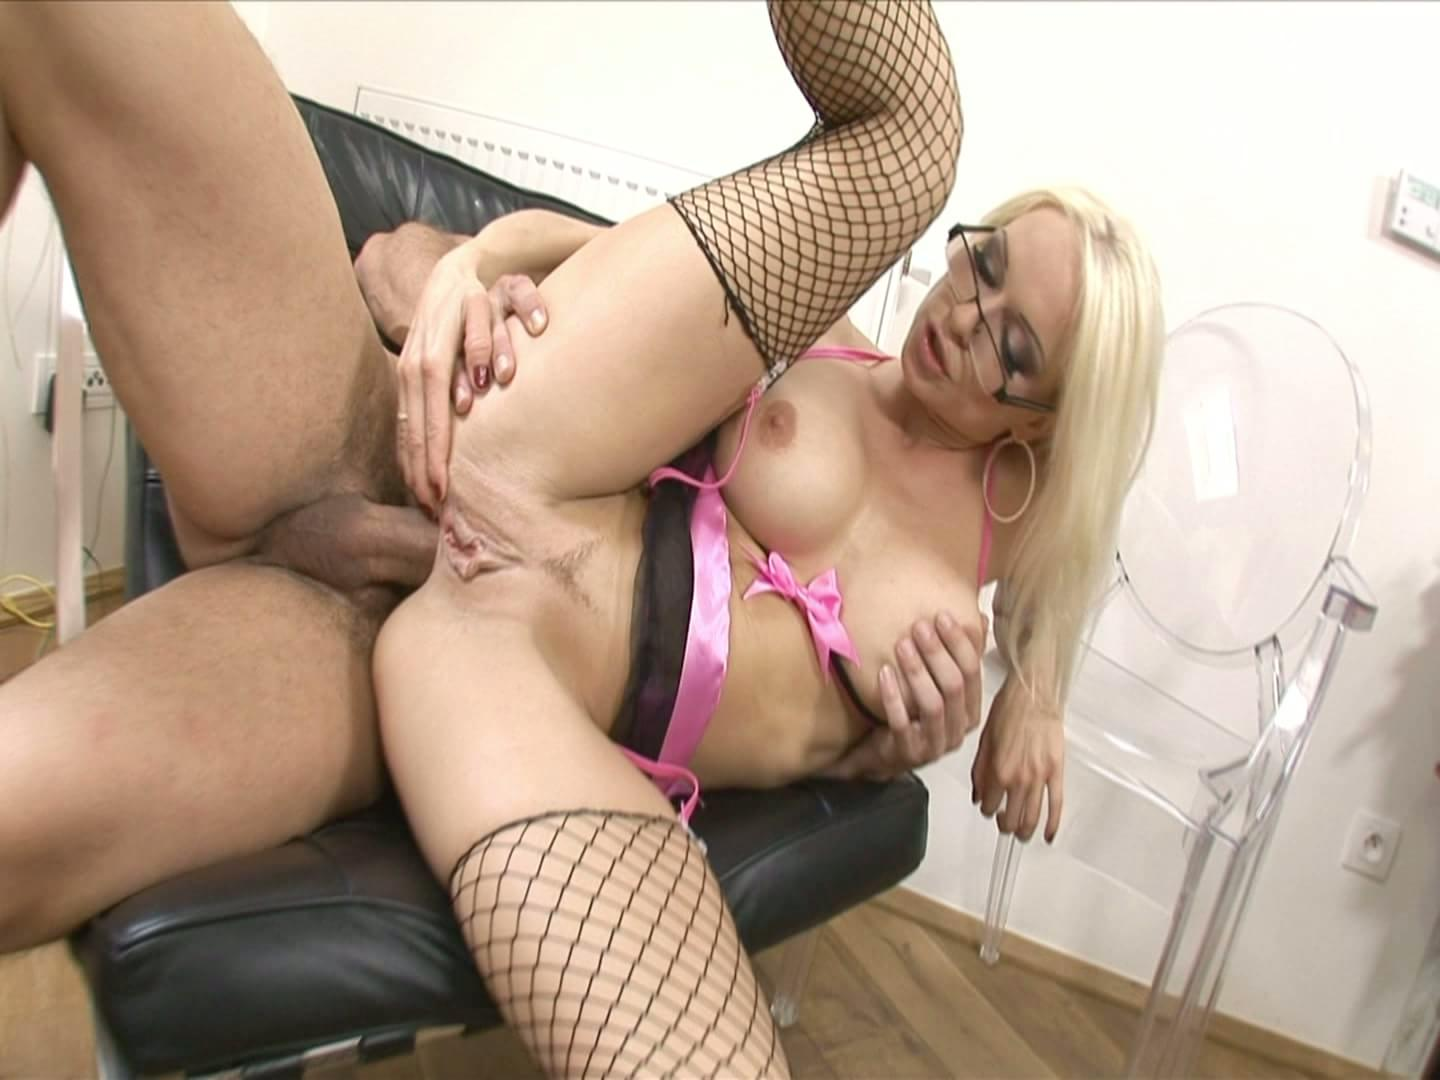 Arousing lesbian sex with ass fingering and pussy licking